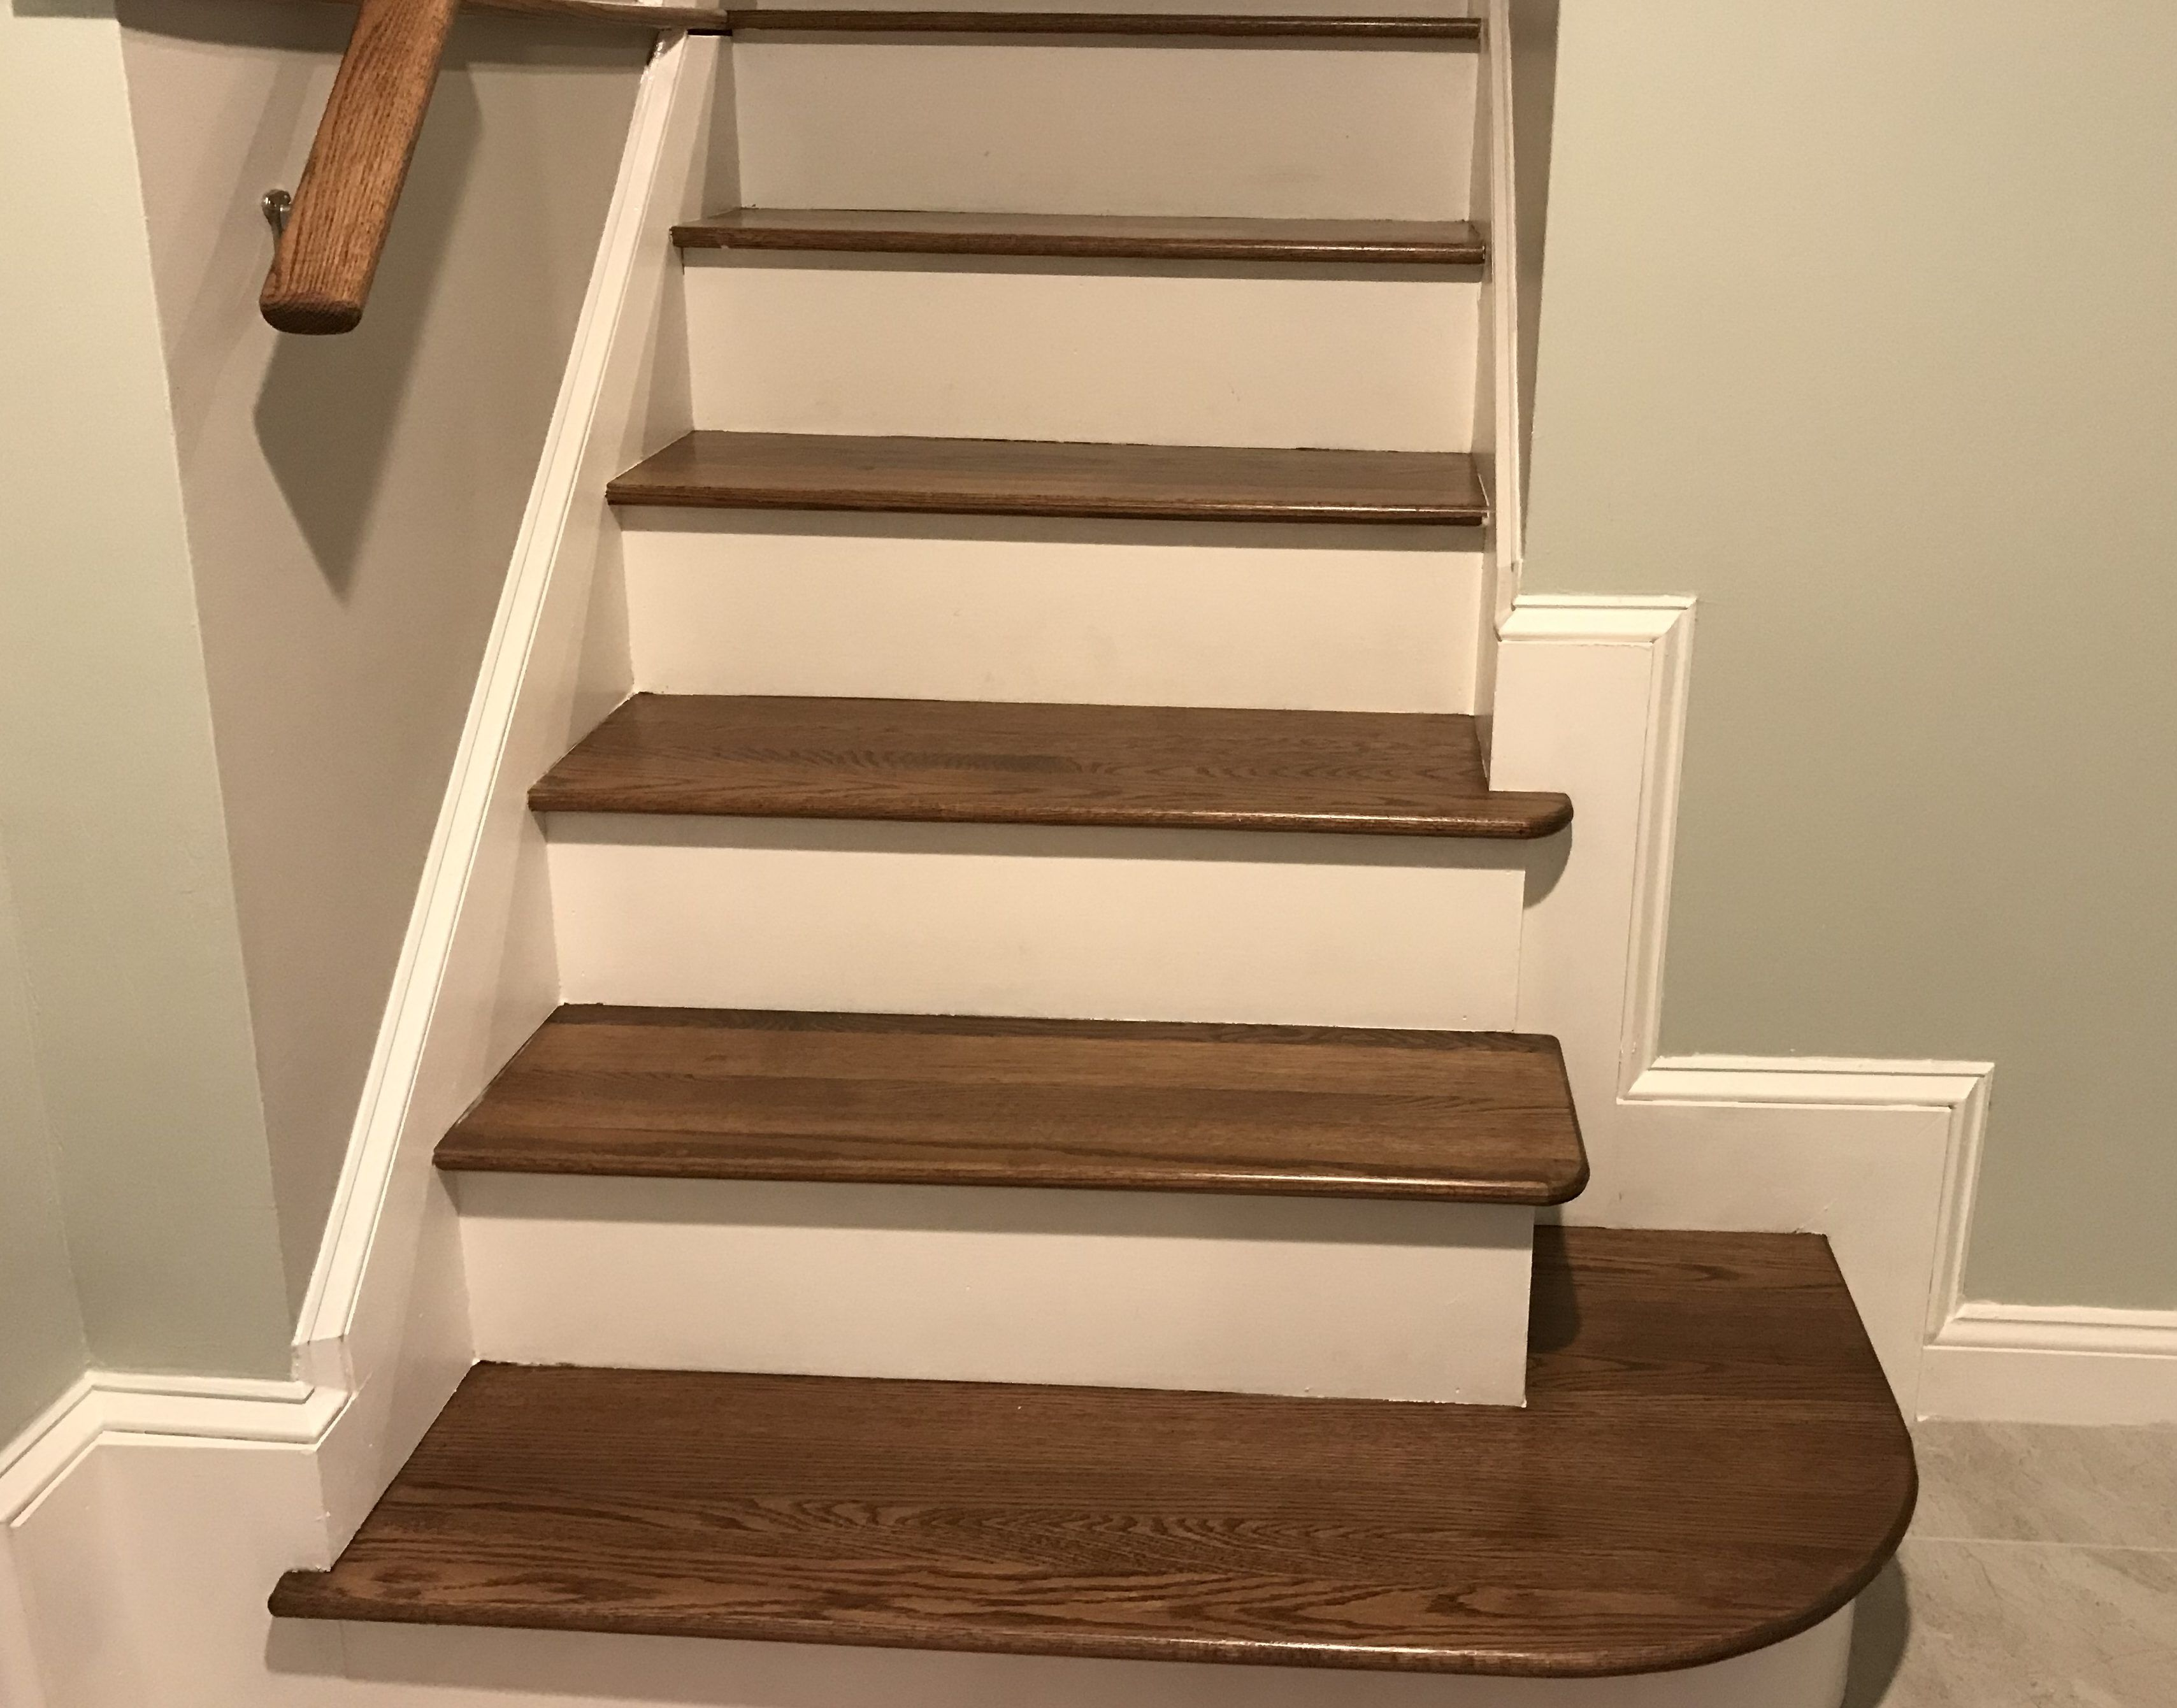 Best How To Make Hardwood Stairs Less Slippery 4 Simple 400 x 300